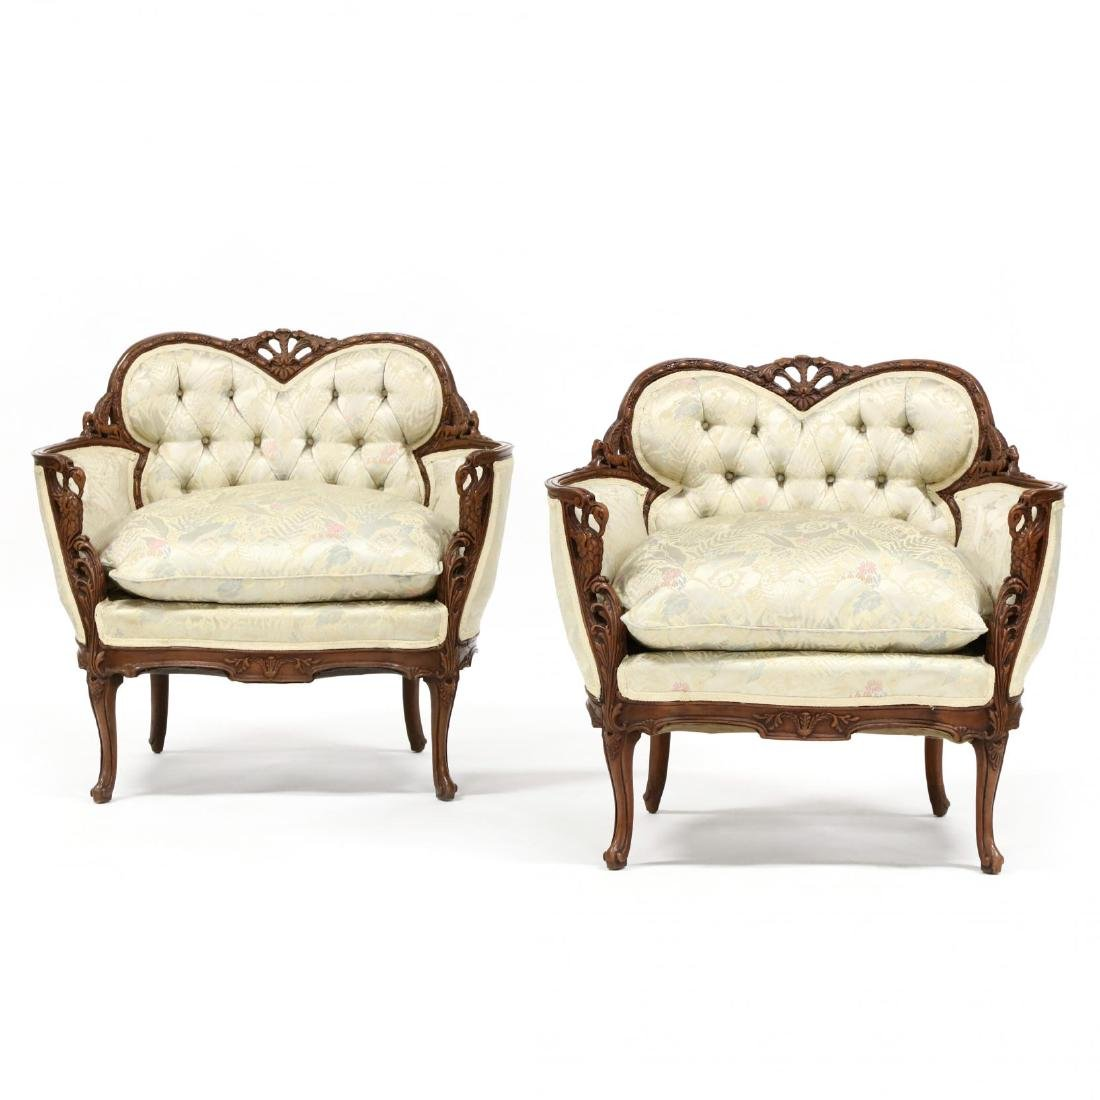 Pair of Vintage Continental Carved Boudoir Chairs